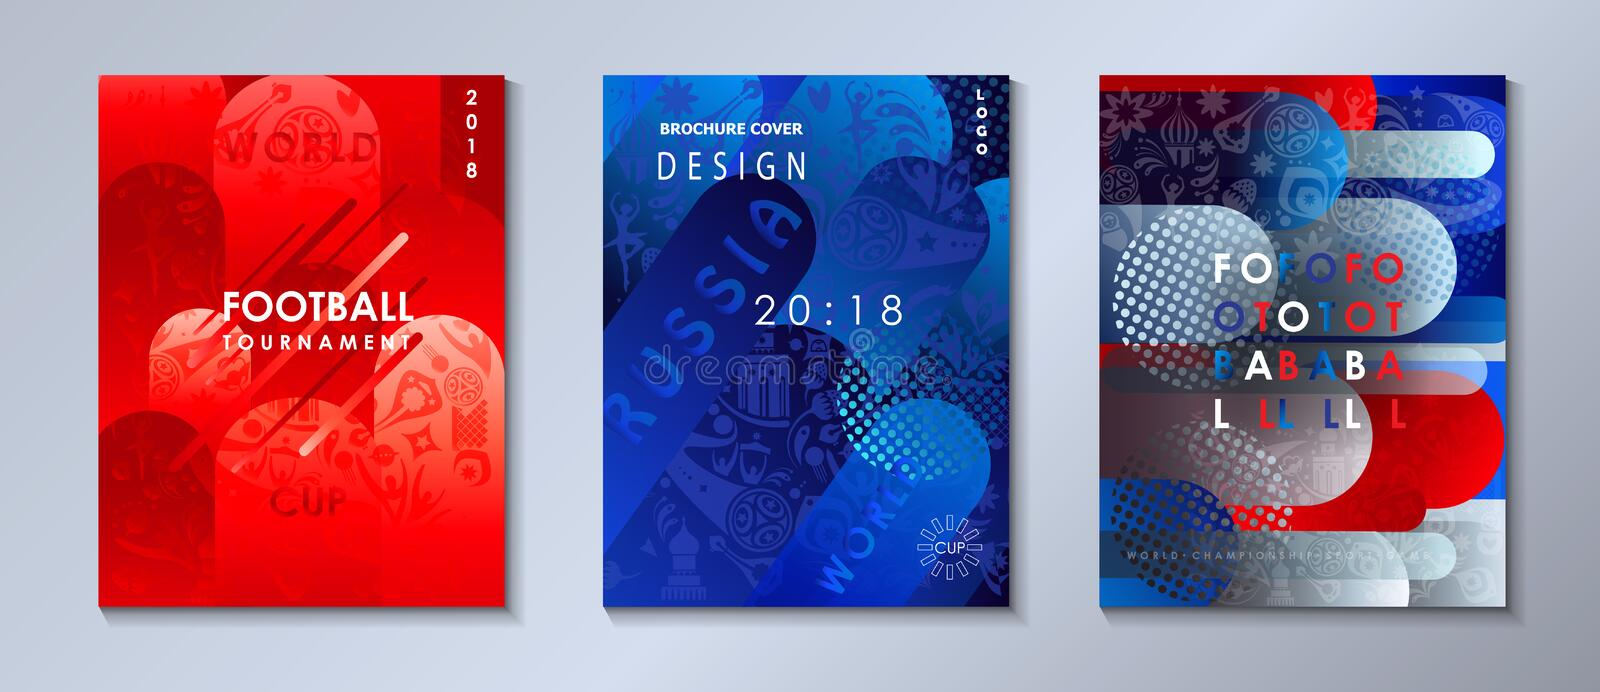 Football 2018 Russia World Cup SOCCER set 2019. Football 2018 Russia World Cup SOCCER Abstract football tournament backgrounds set, dynamic texture banners vector illustration